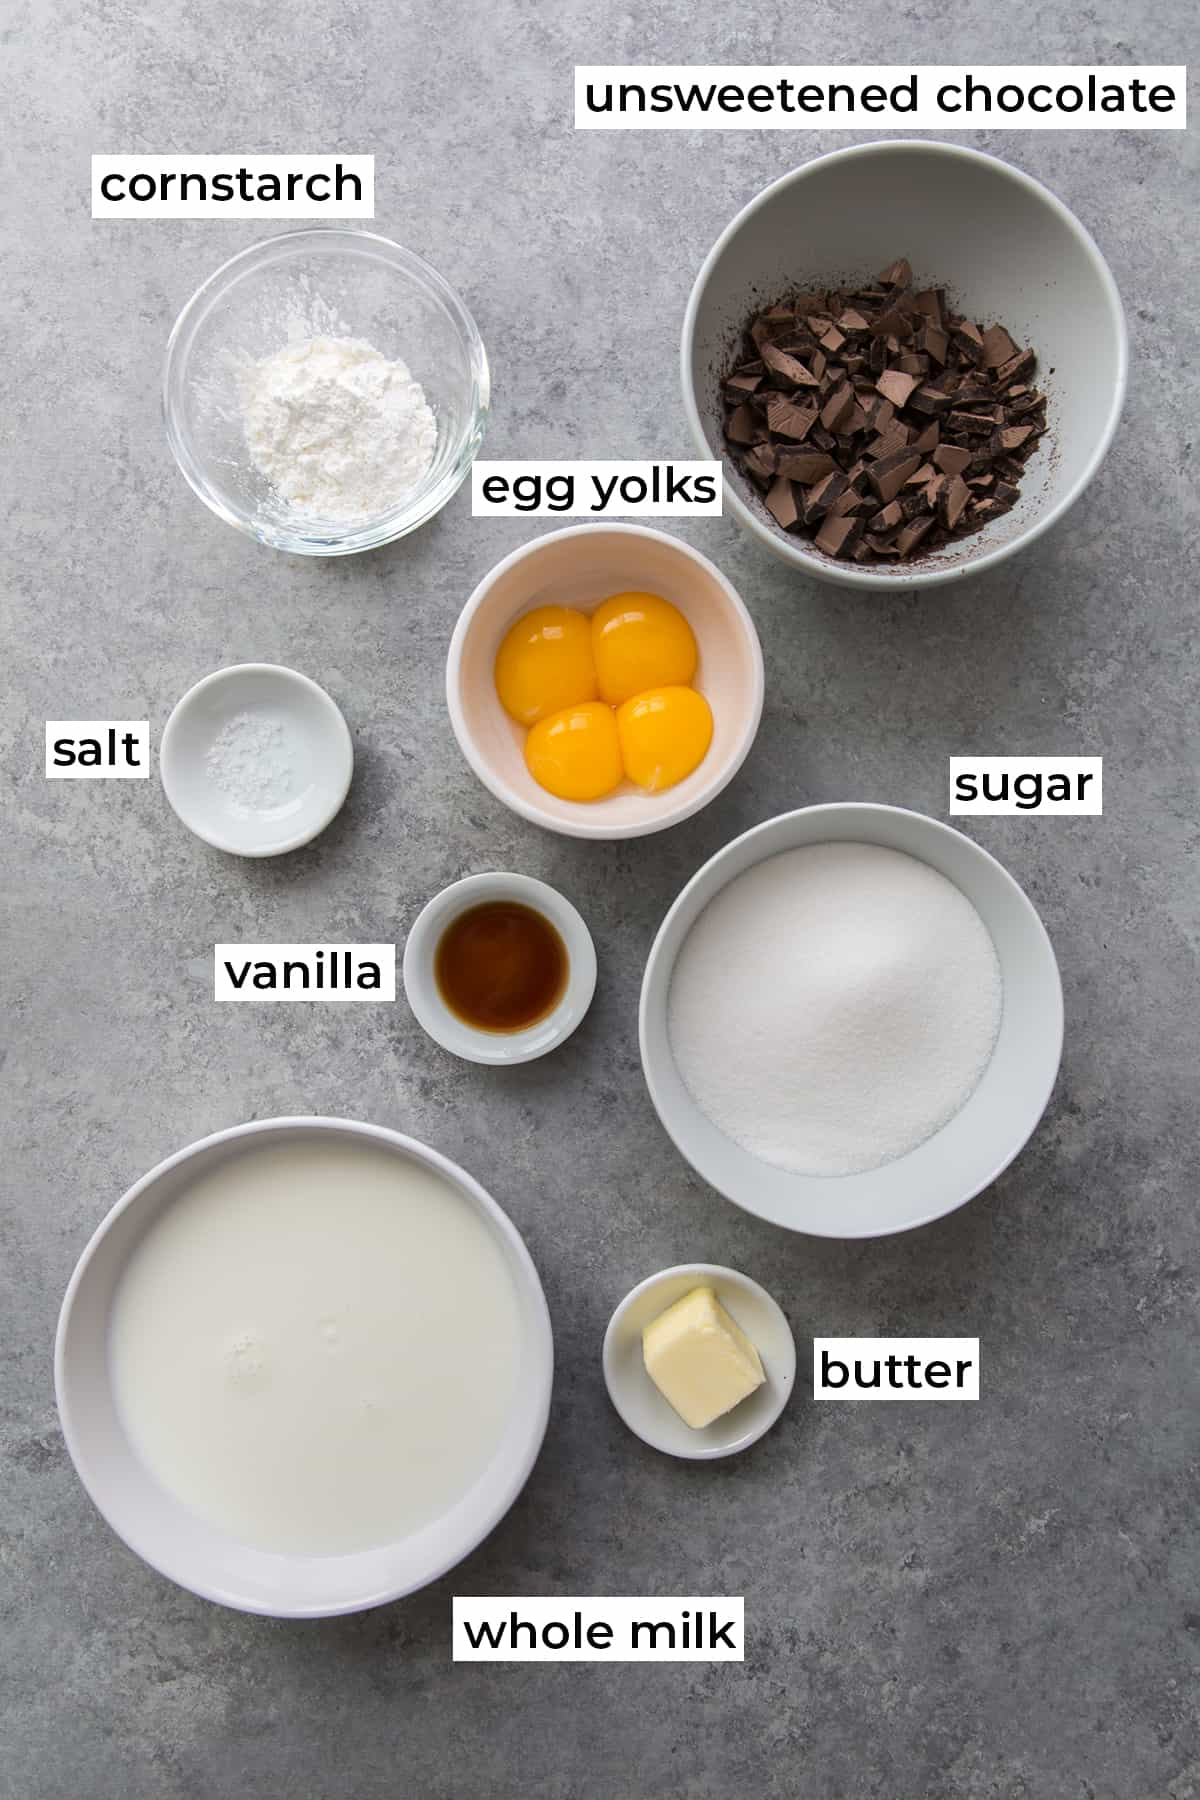 All the ingredients needed to make Chocolate Cream Pie with text overlay.